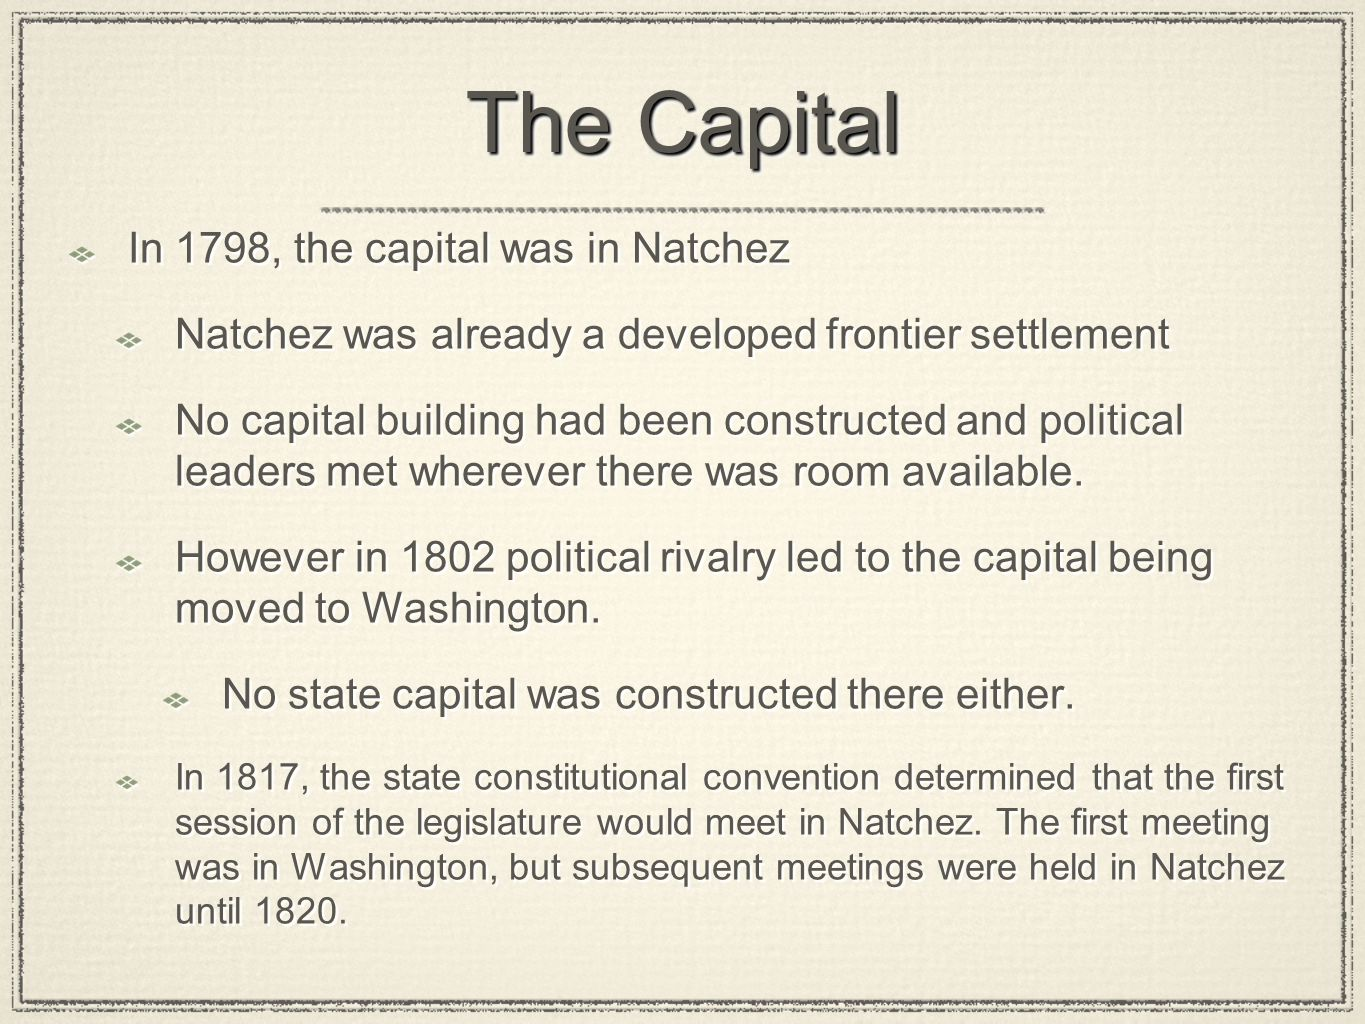 The Capital In 1798, the capital was in Natchez